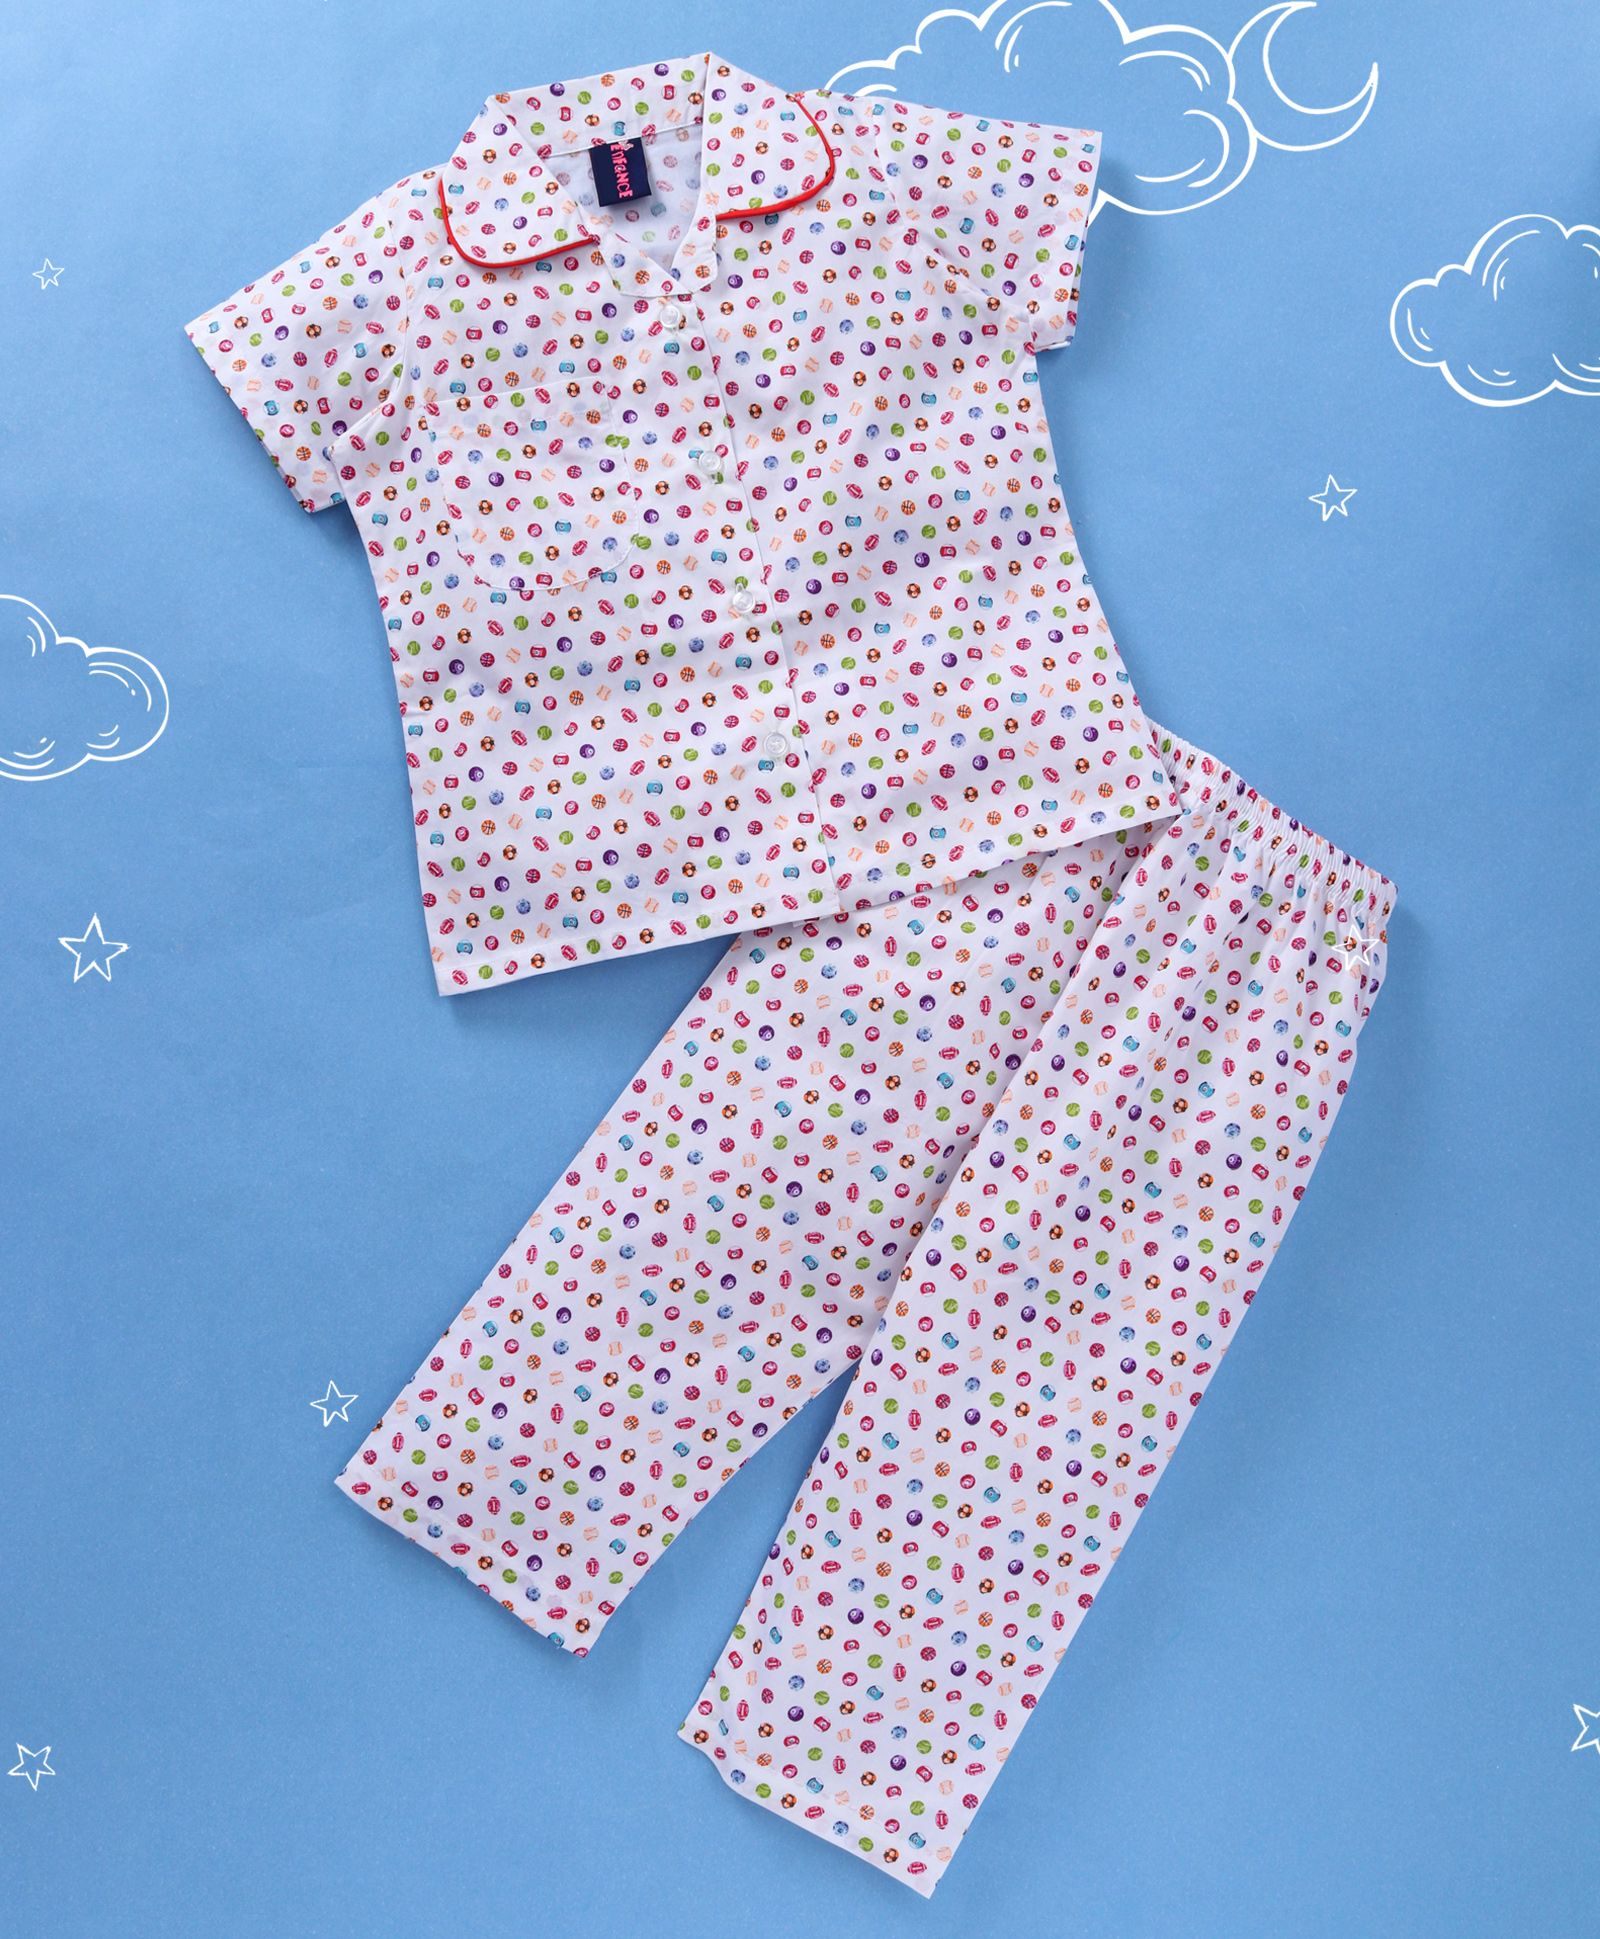 037cab0f20c2d Buy Enfance Core All Over Ball Print Night Suit White for Boys (1-2 Years)  Online in India, Shop at FirstCry.com - 2039627